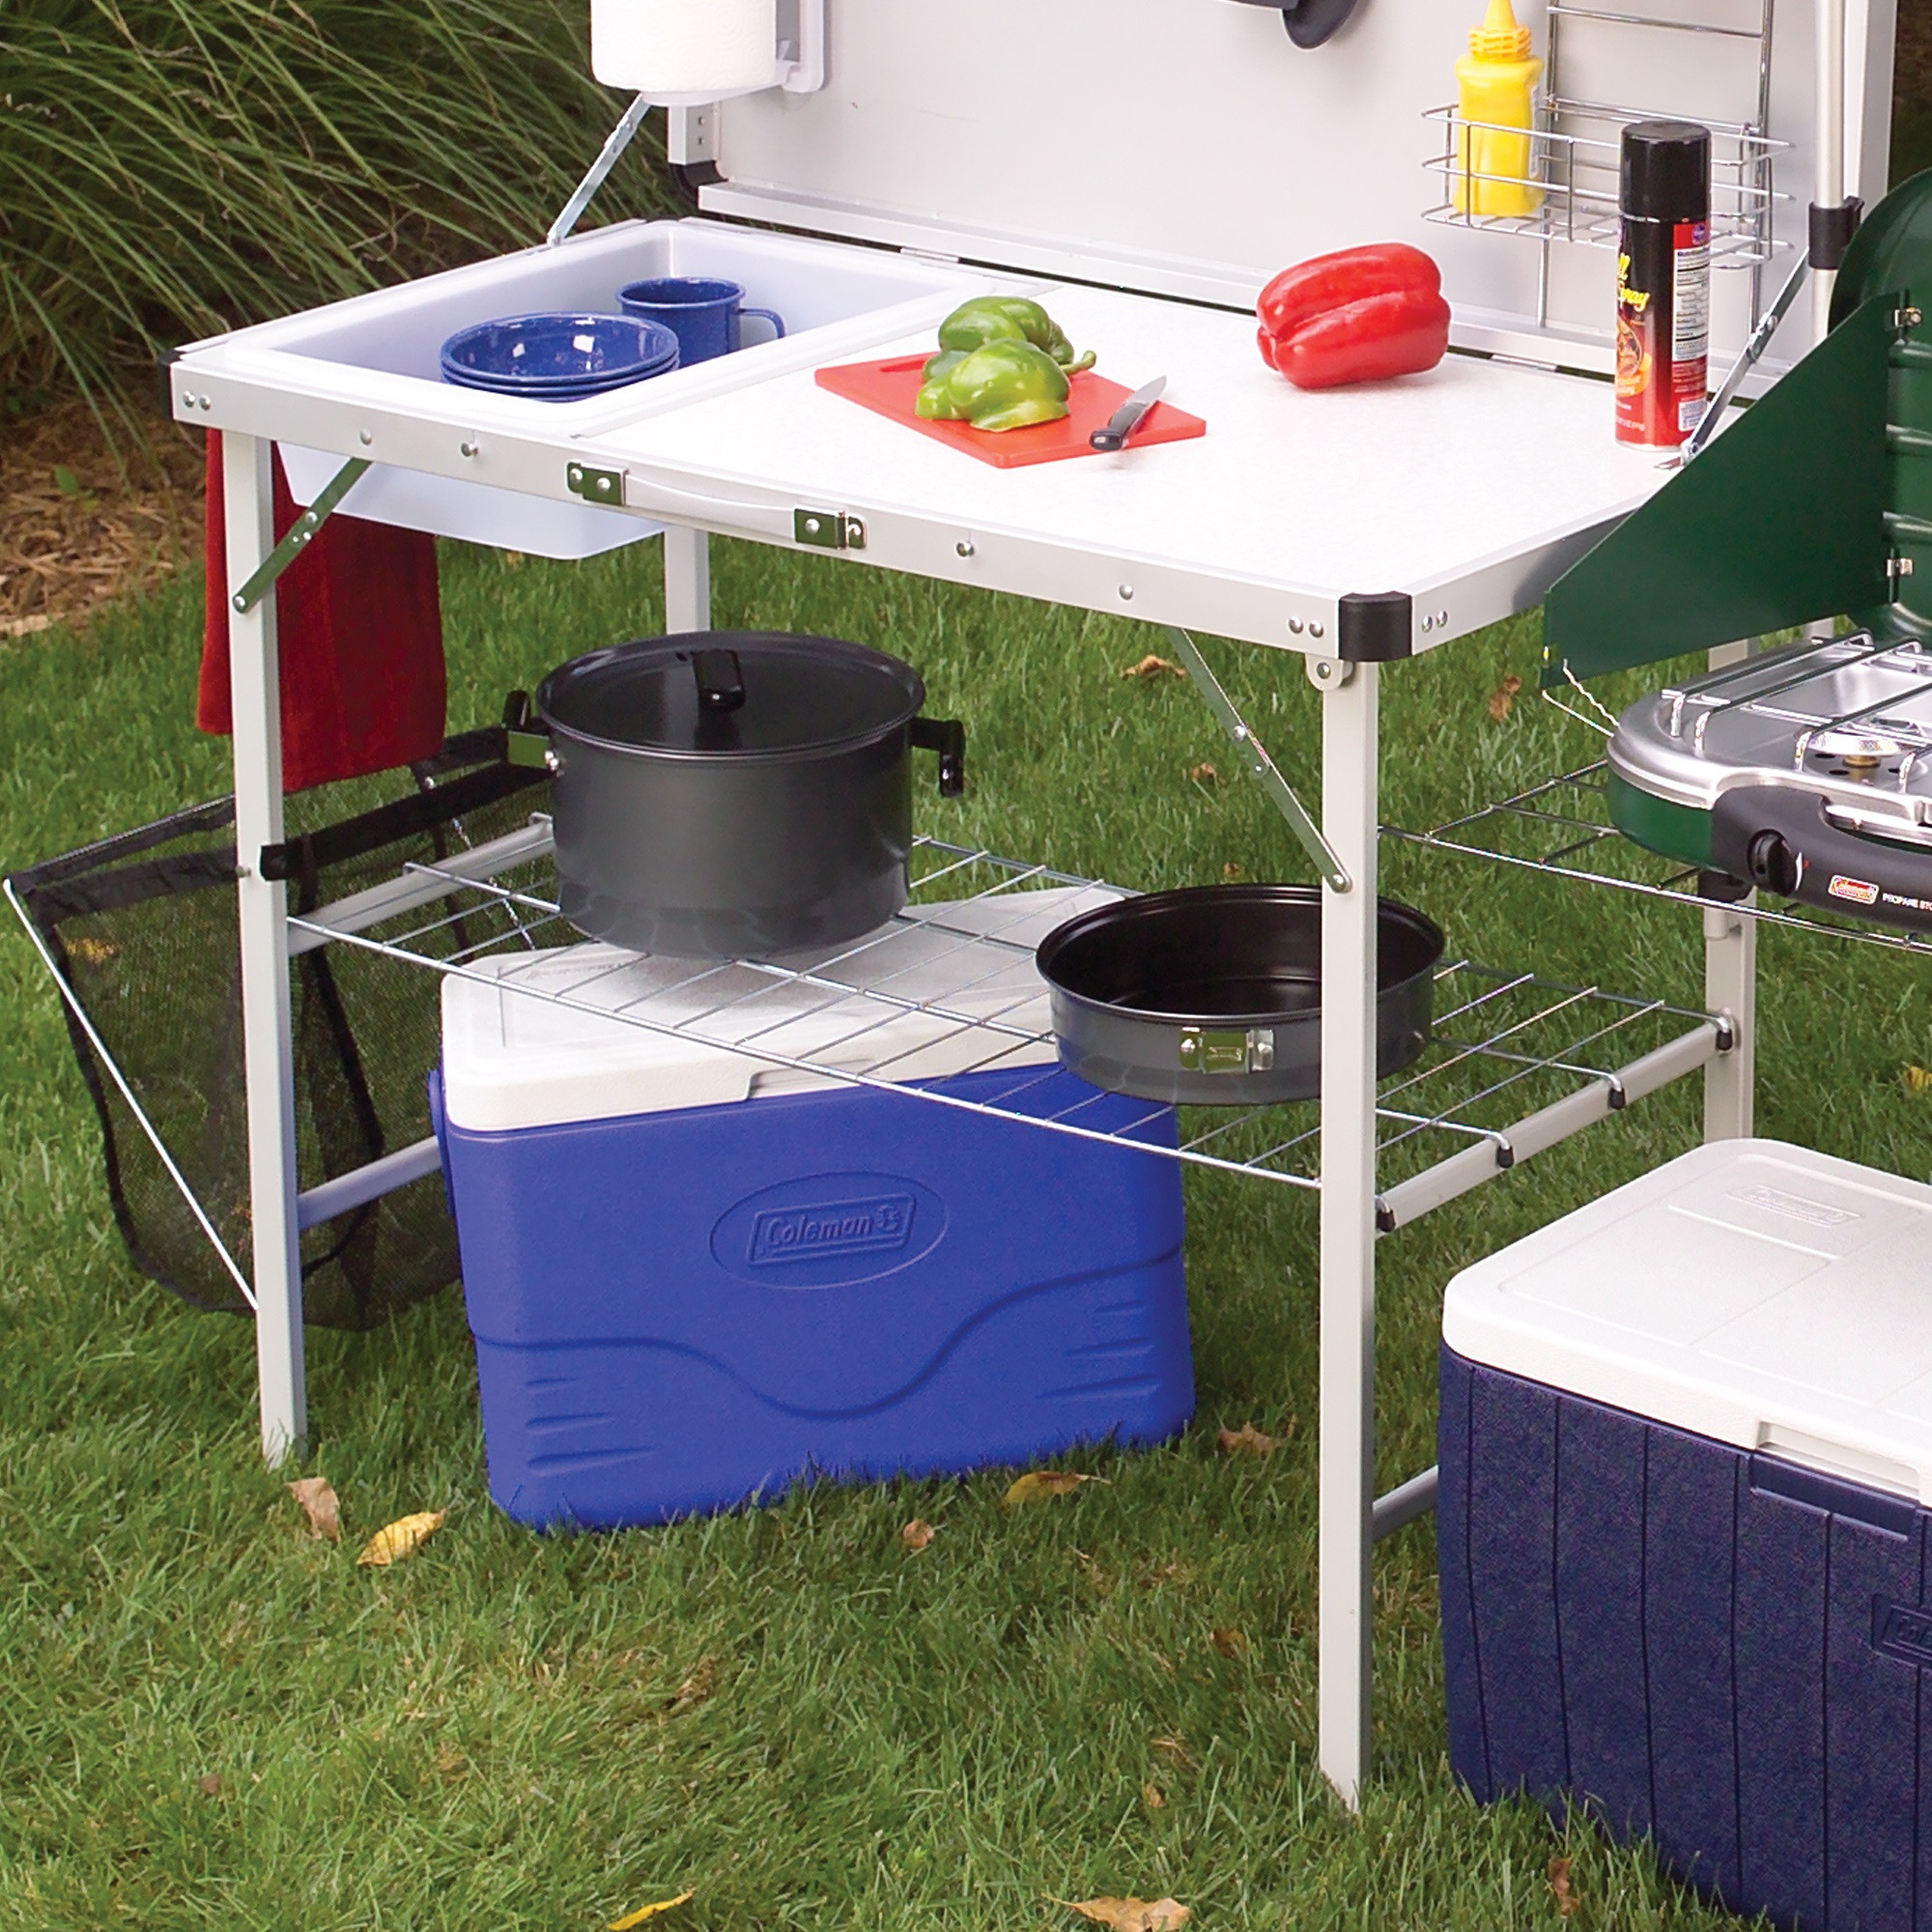 Outdoor Camping Kitchen With Sink  Coleman Packaway Camp Kitchen Folding Travel Portable Set